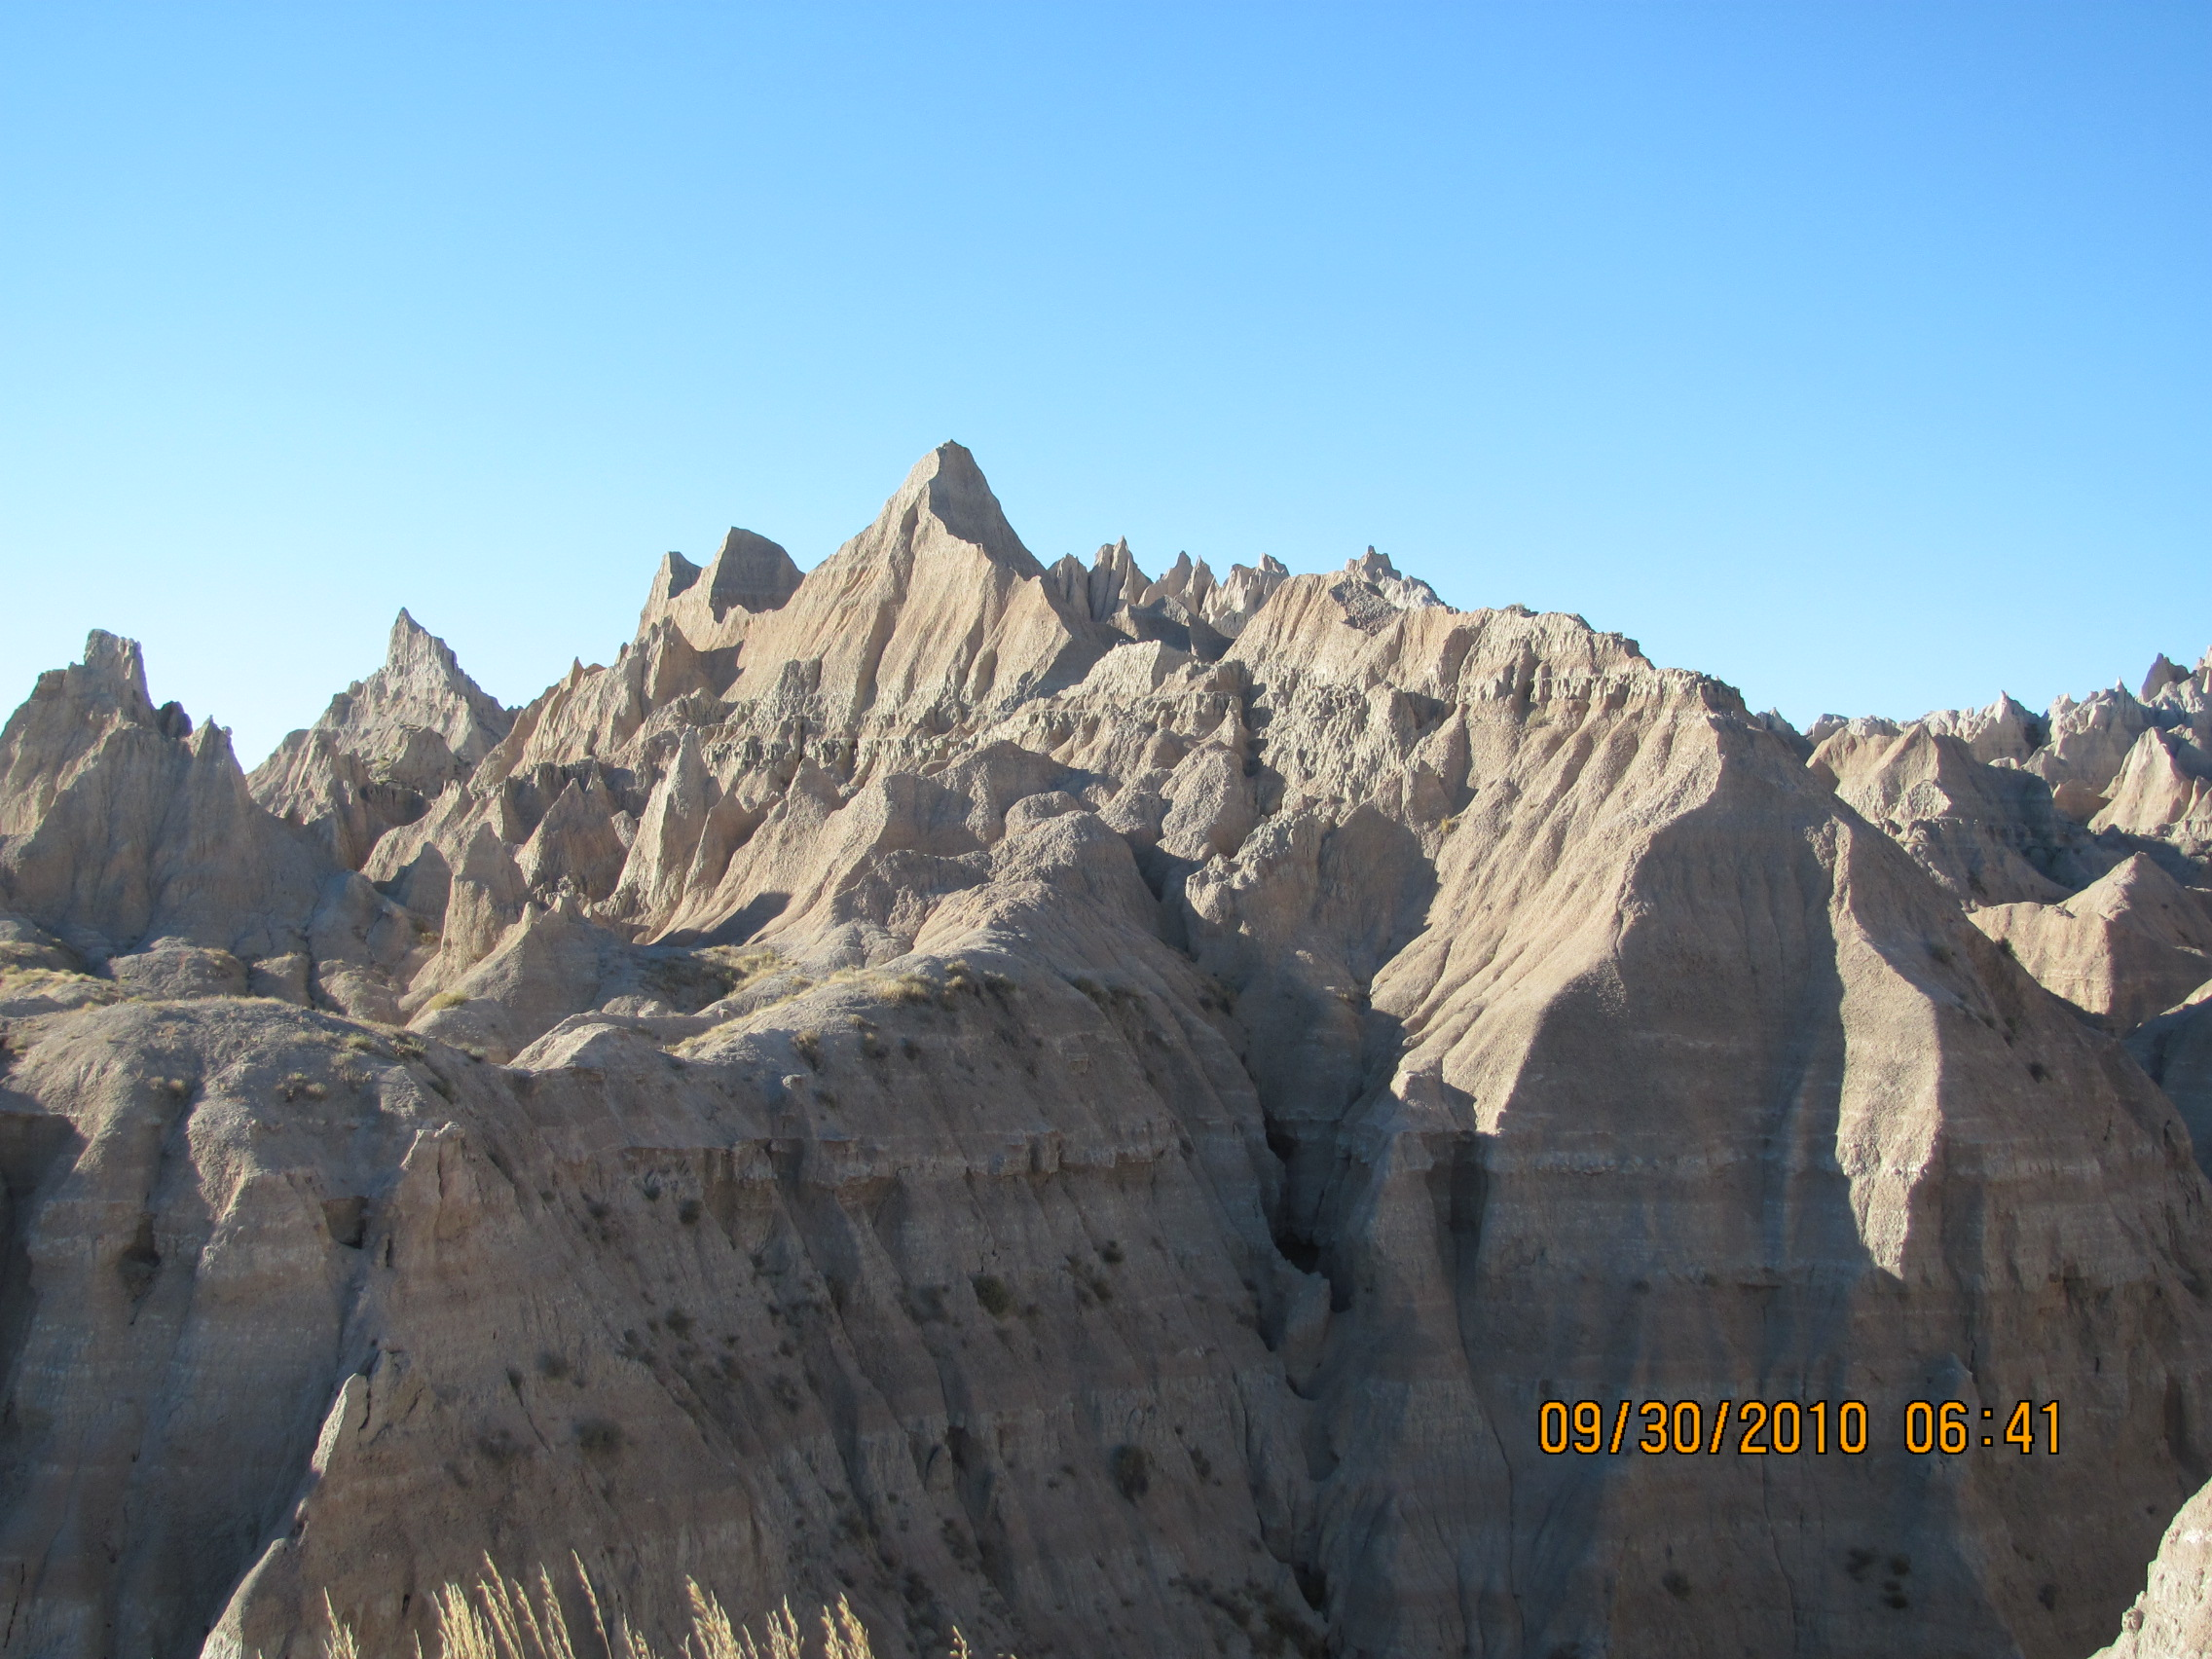 Gatchell Museum, Badlands, Tensleep, Black Hills -They're all good